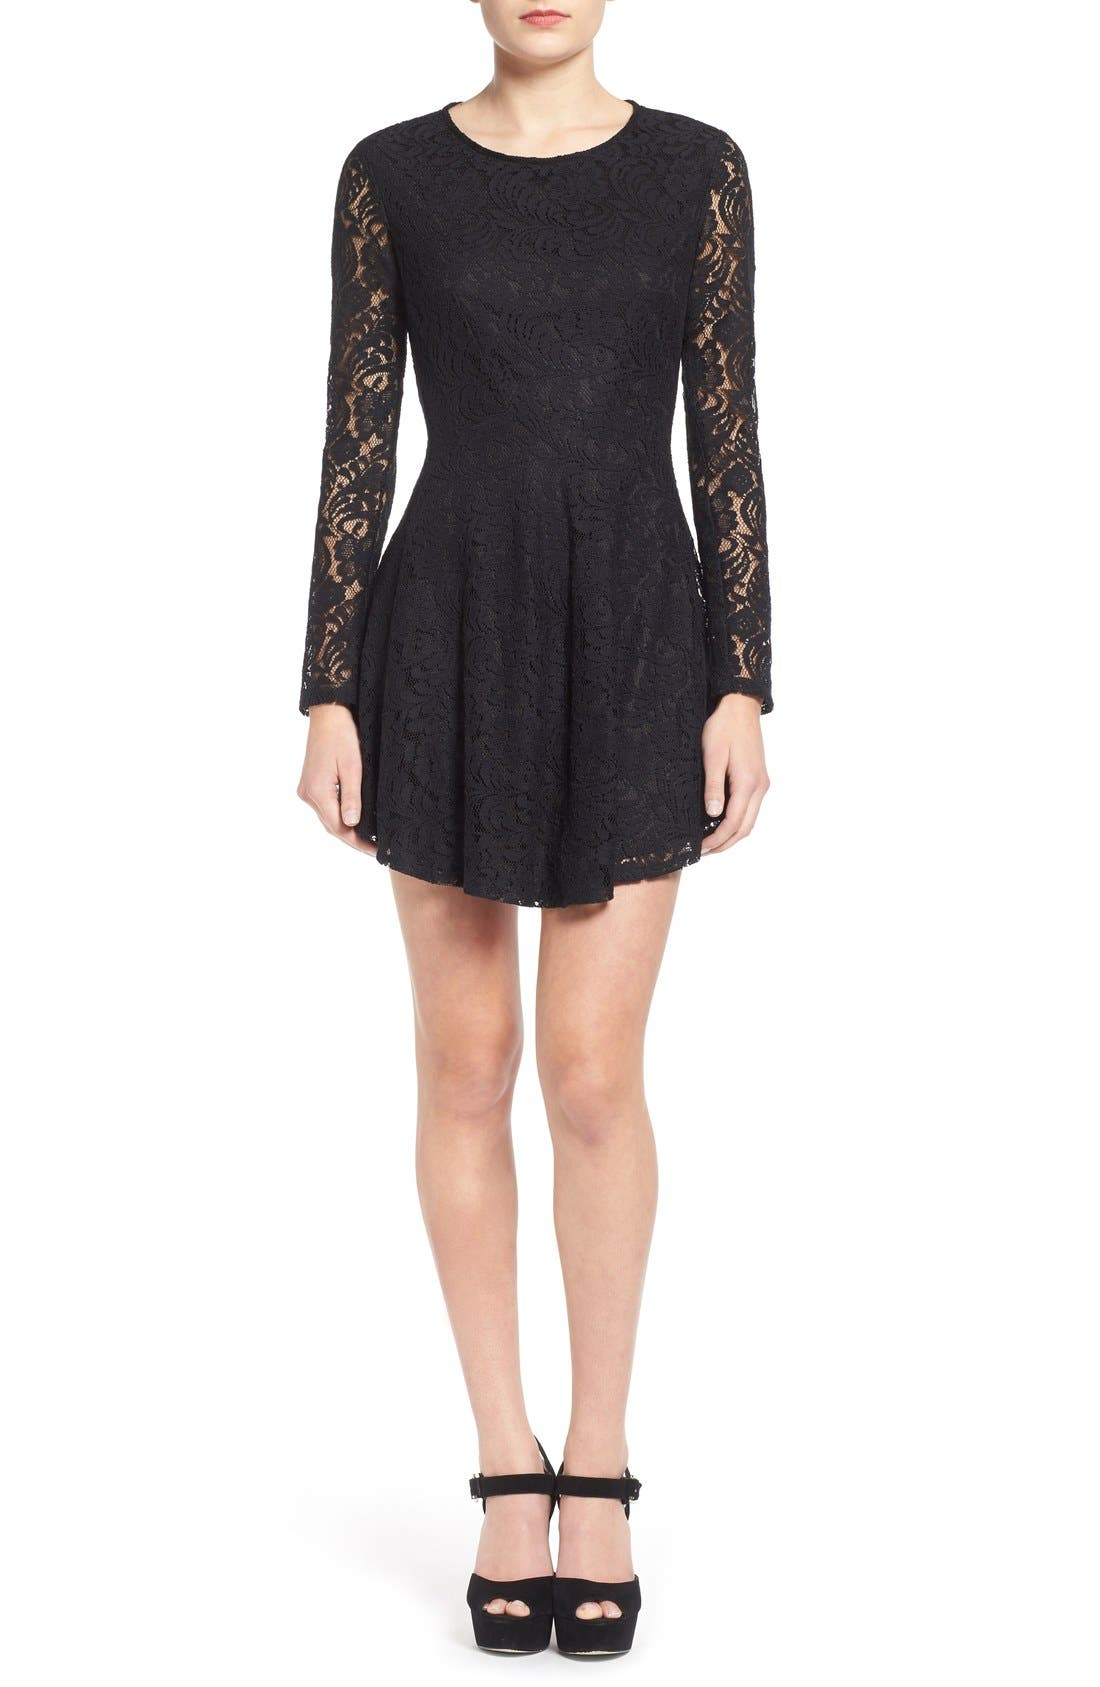 Alternate Image 1 Selected - Lush Floral Lace Fit & Flare Dress